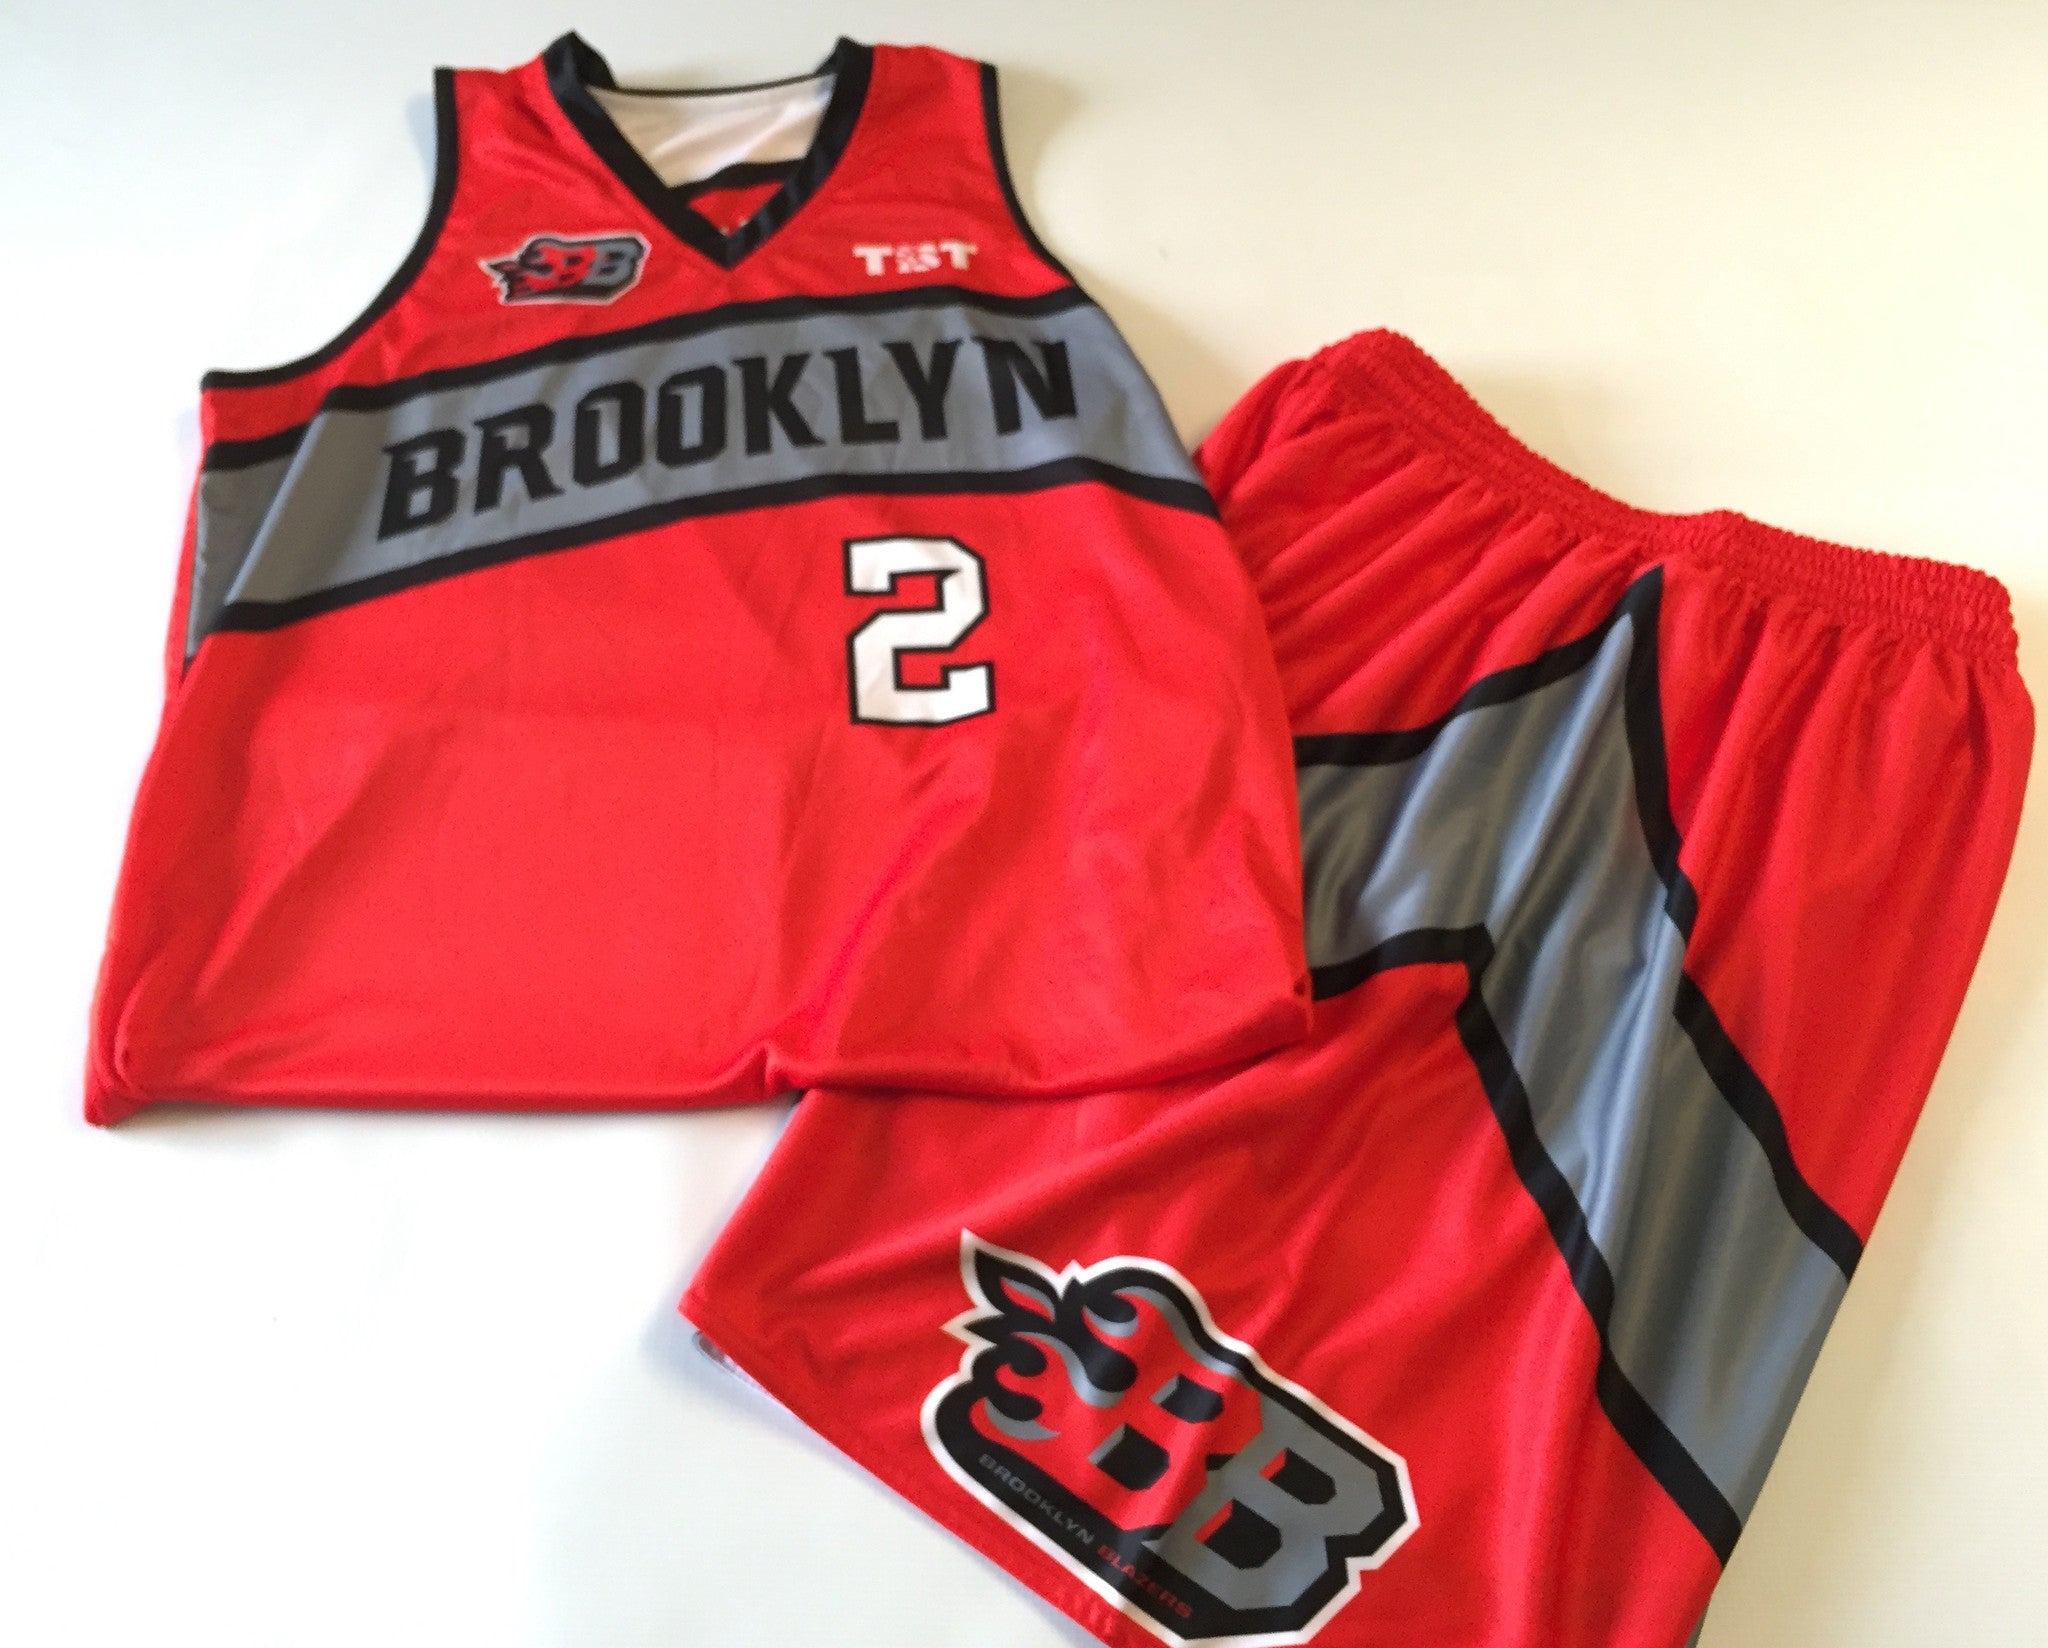 Brooklyn Blazers - 2015 Official Team Uniform (Jersey & Shorts sold separately)